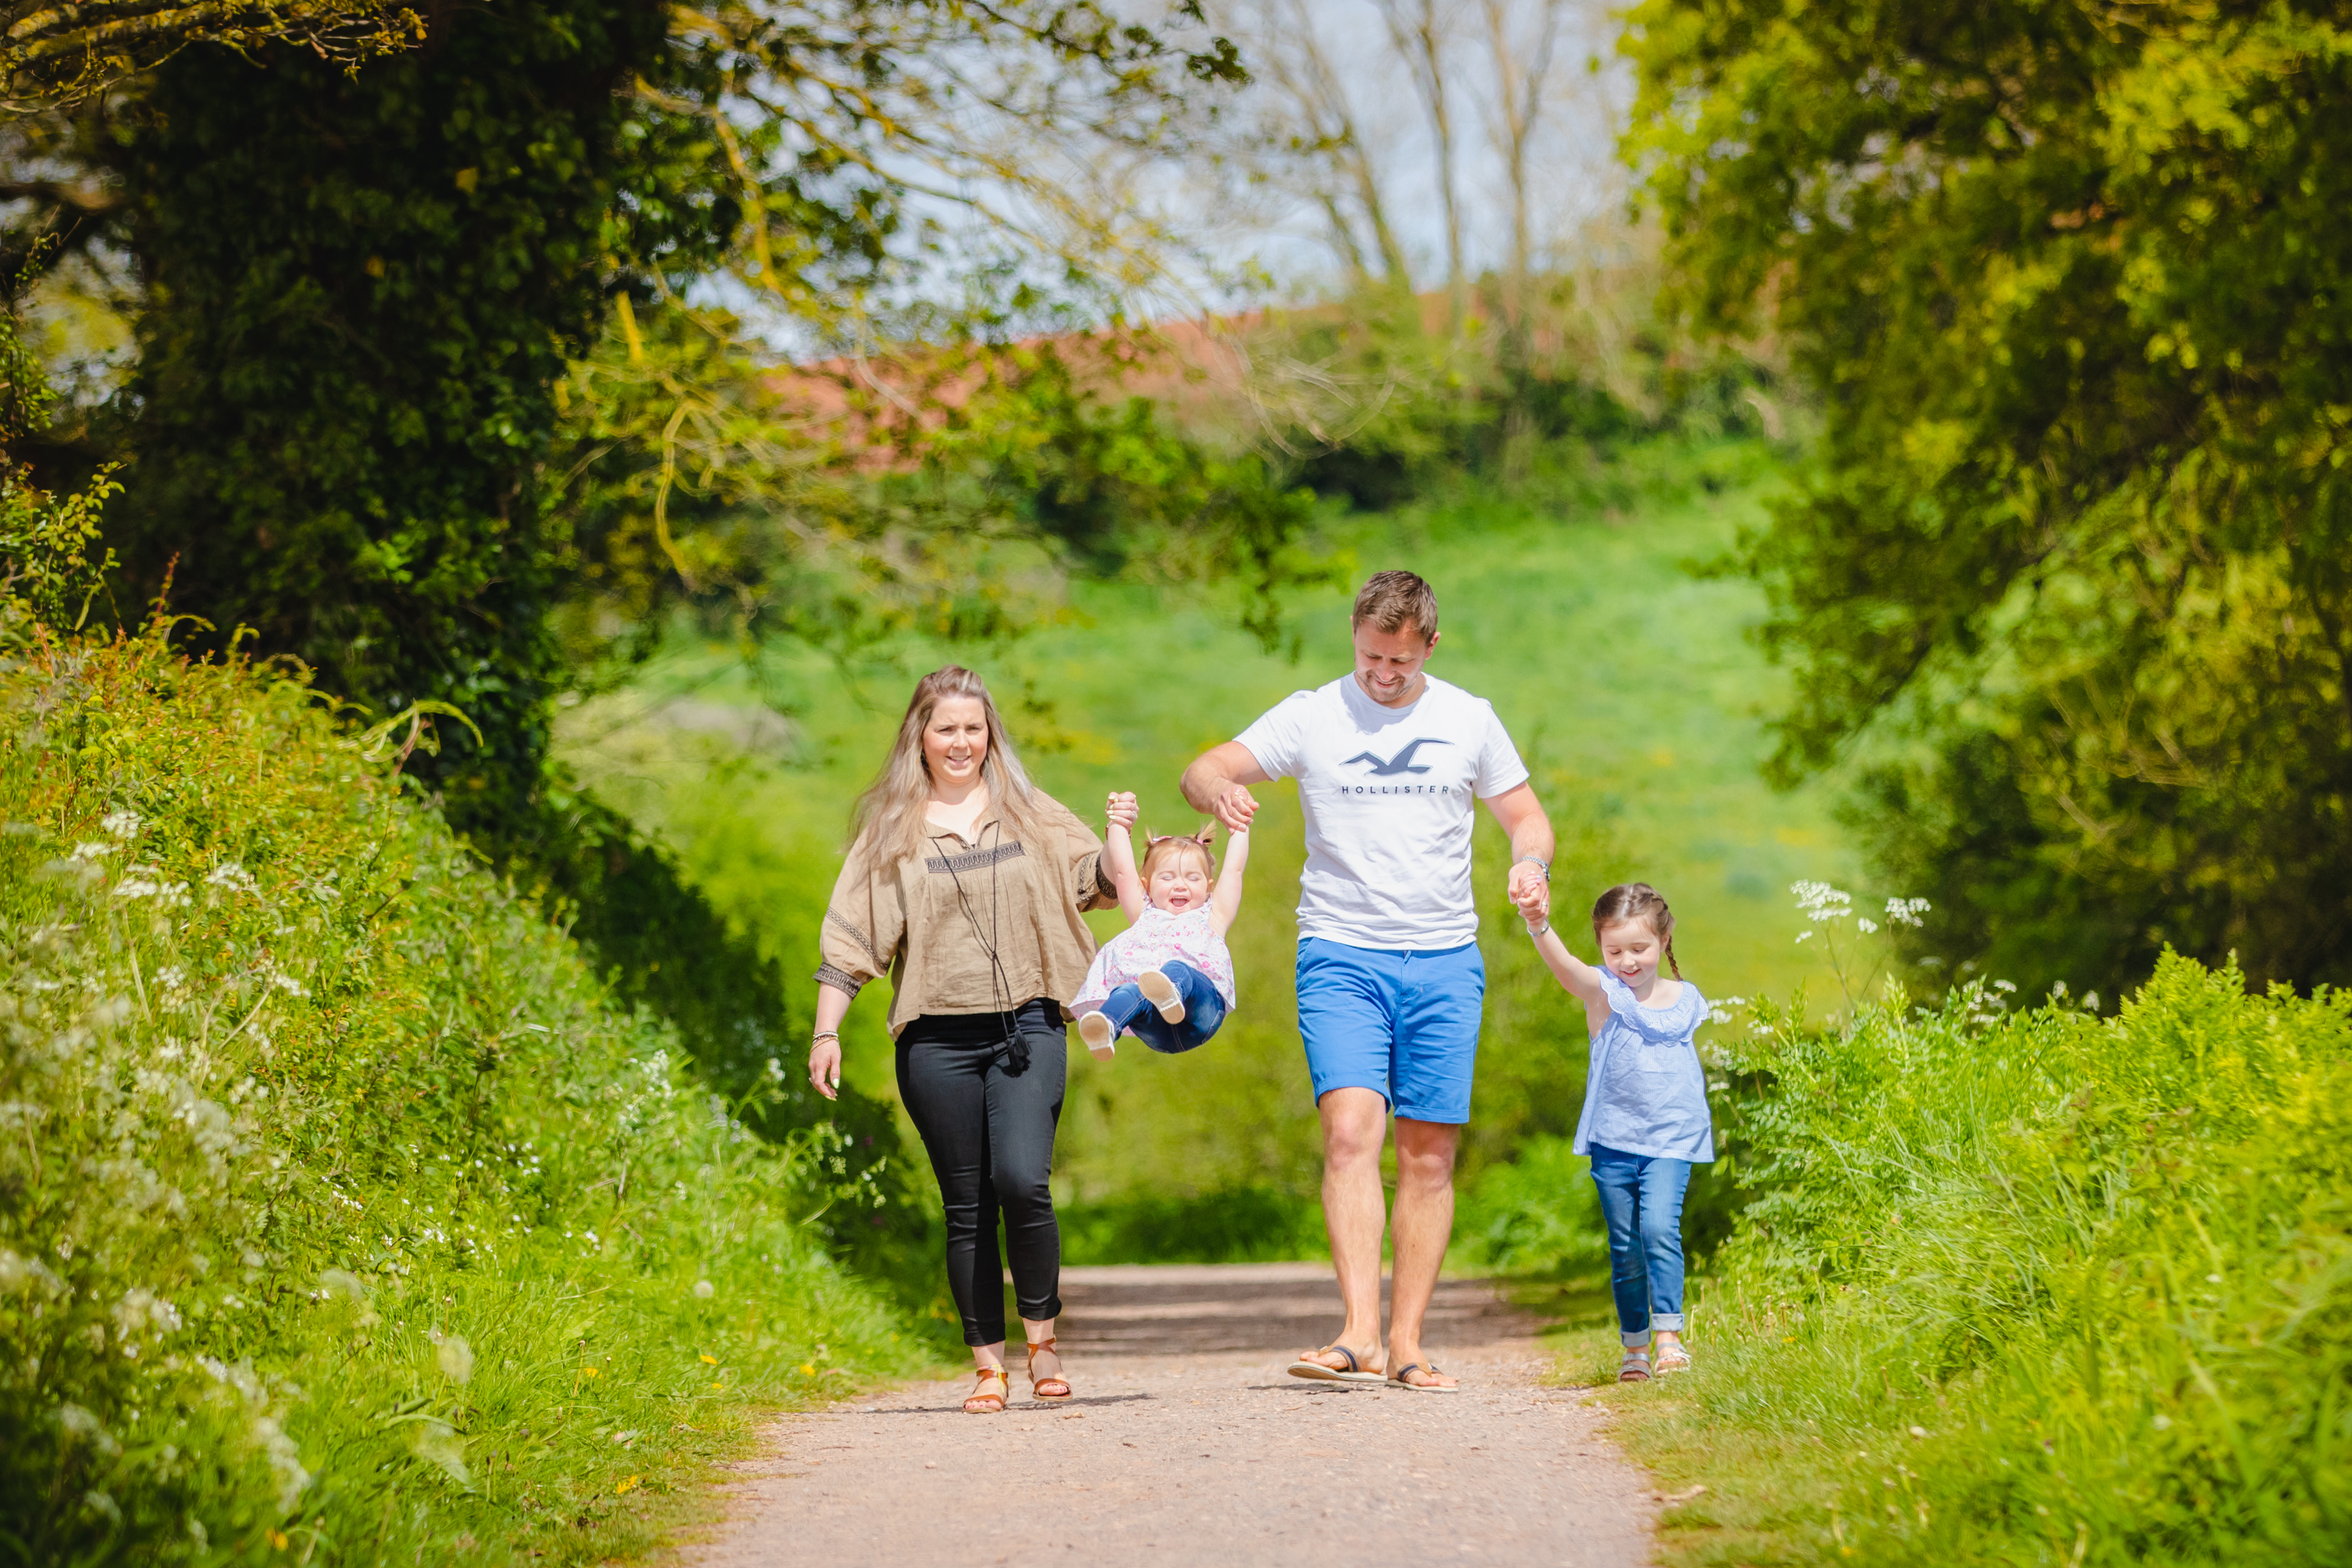 Canal Family walk